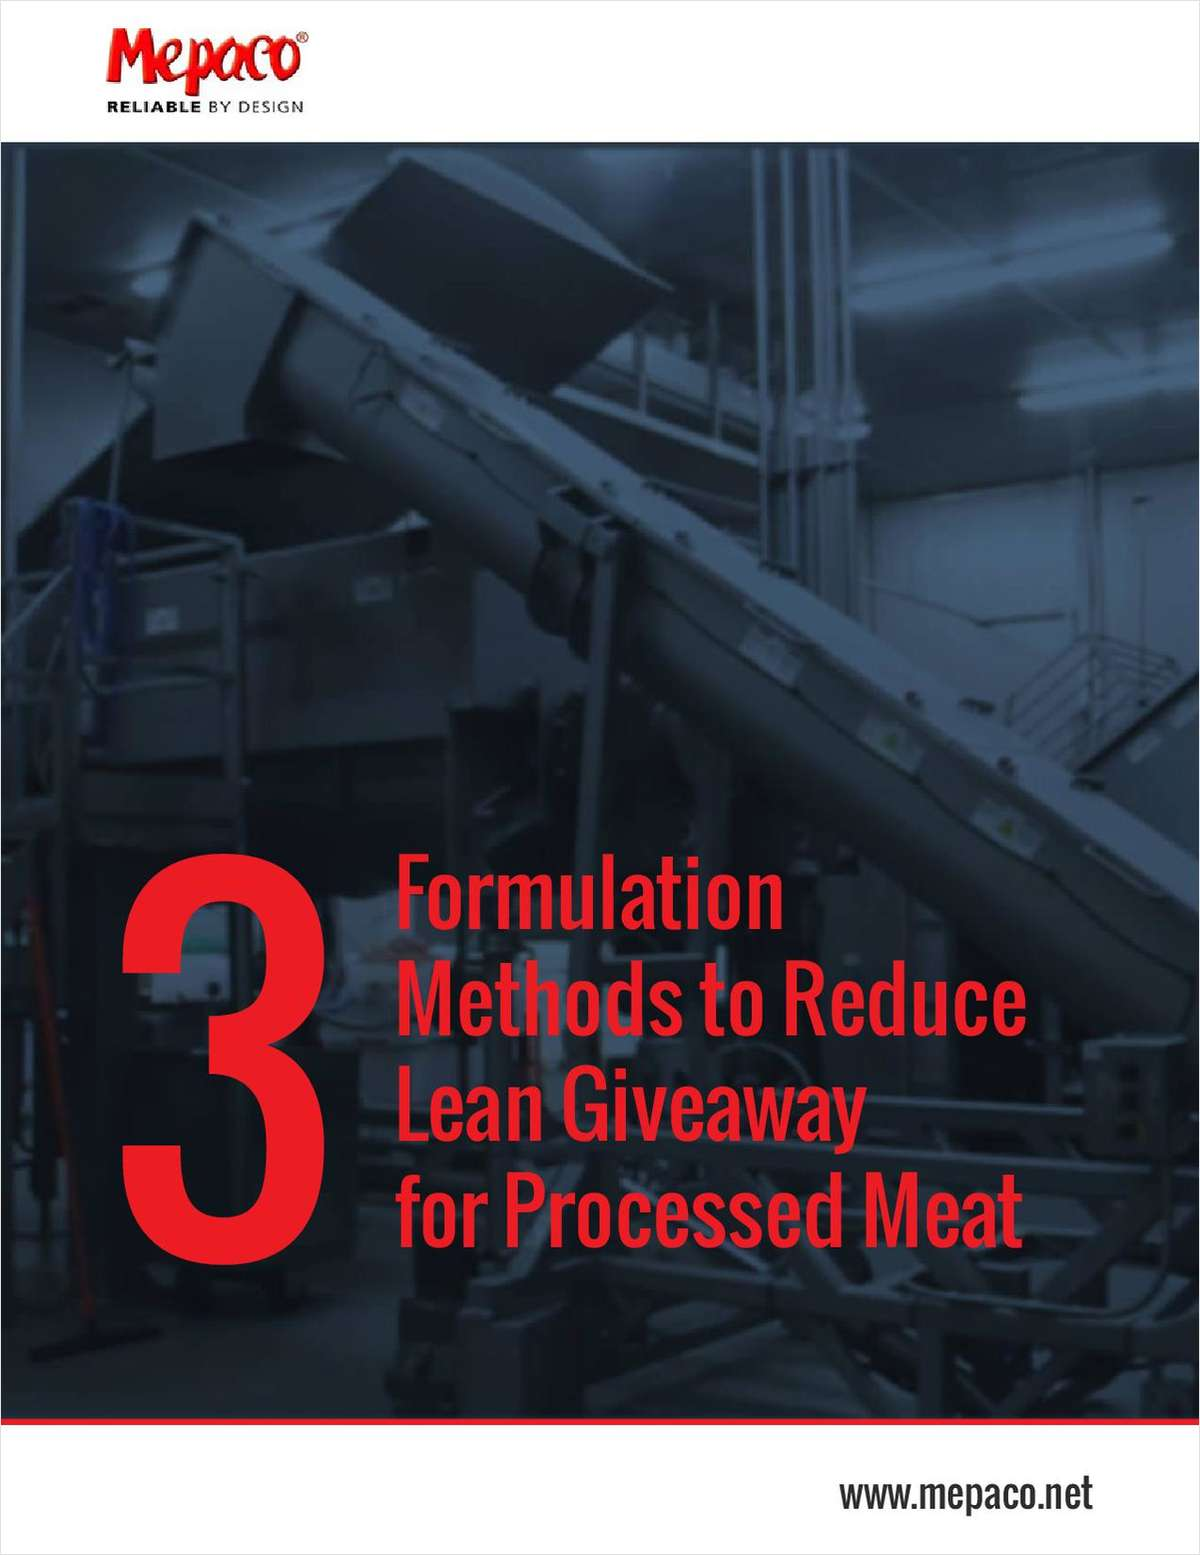 3 Formulation Methods to Reduce Lean Giveaway for Processed Meat